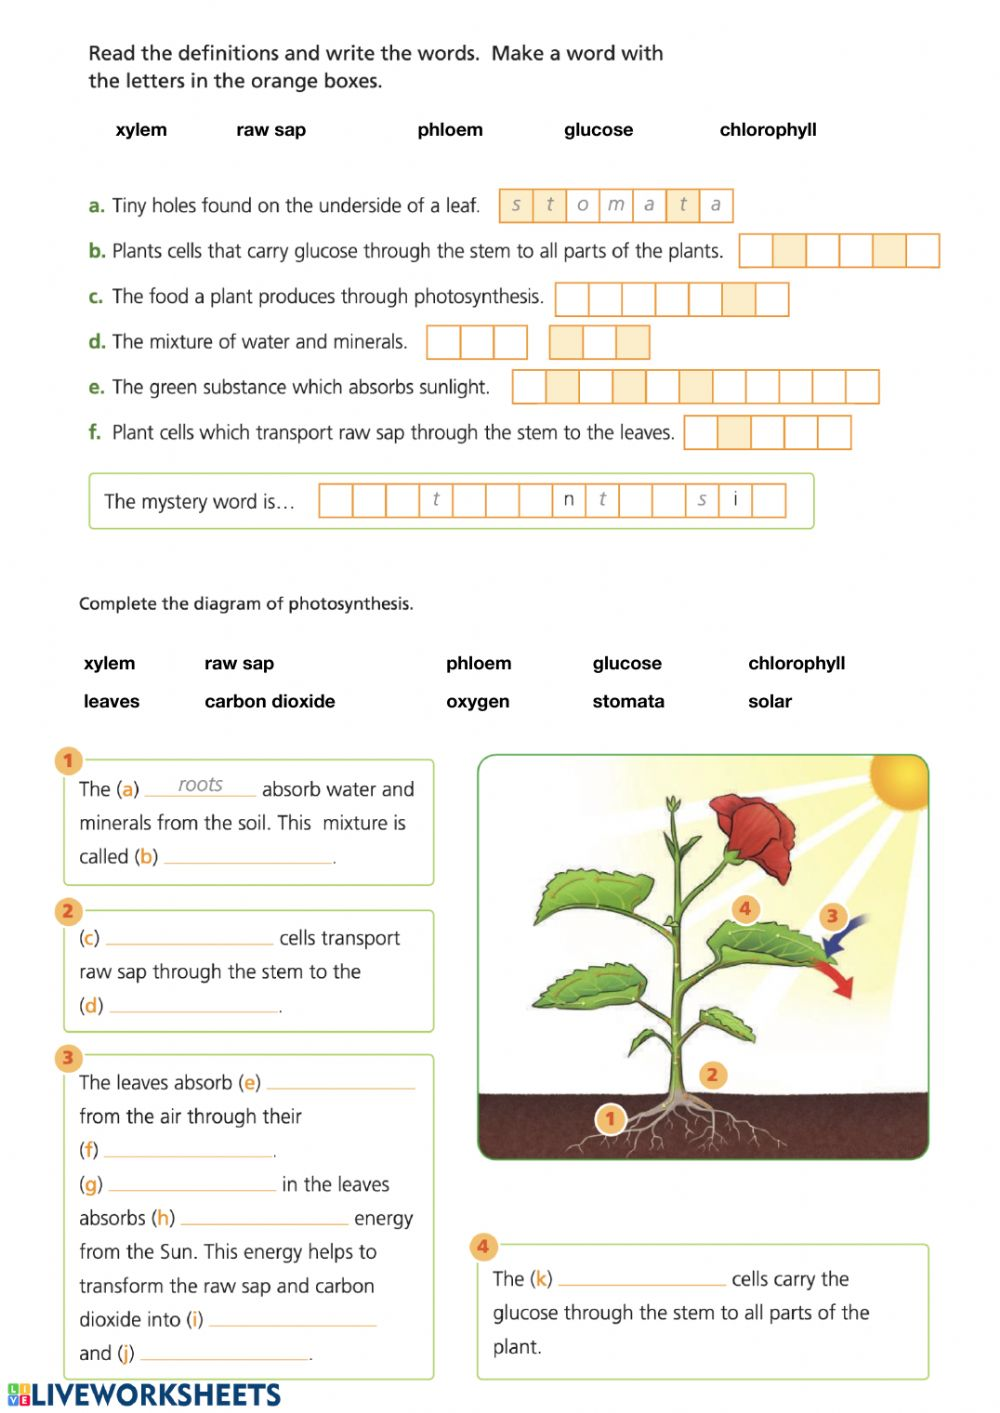 Photosynthesis online activity